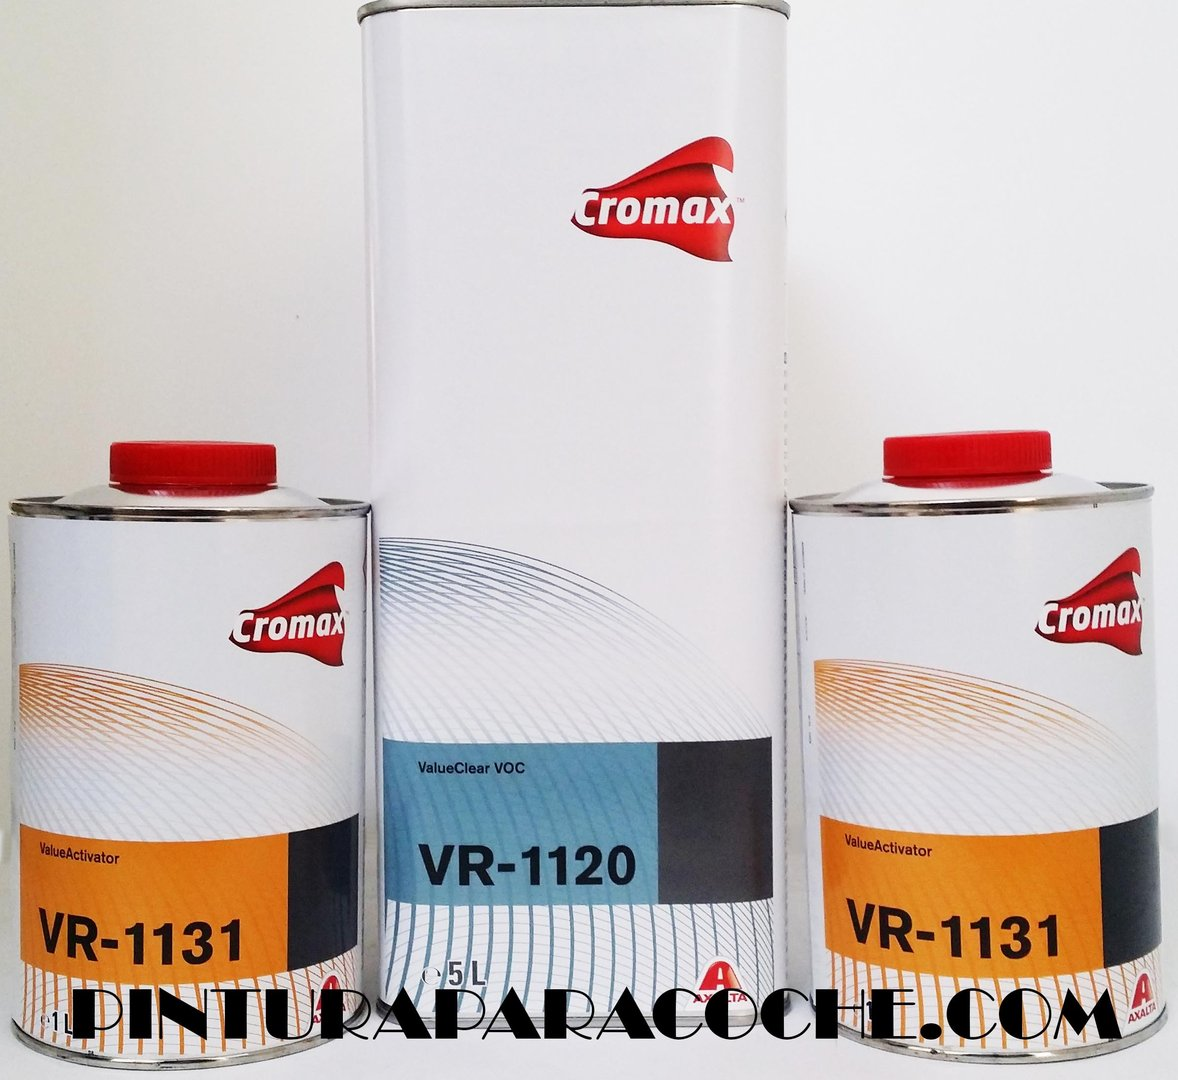 Kit Cromax VR1120 + 2 catalizadores